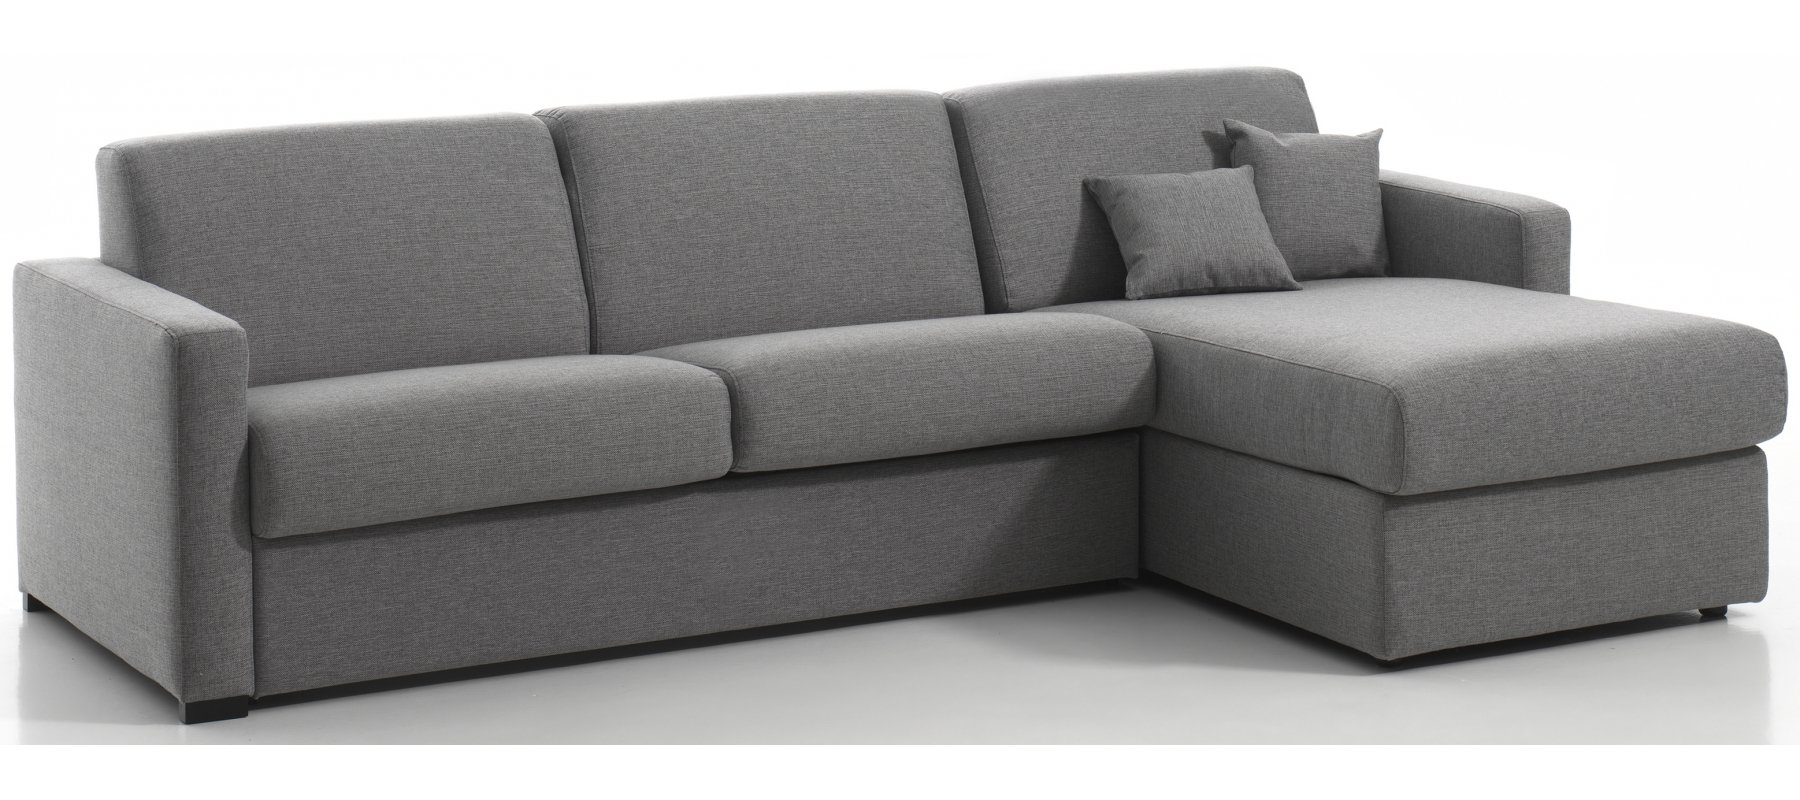 MANOSQUE - Largeur 268 cm - Canapé d'angle convertible Couchage 140 cm